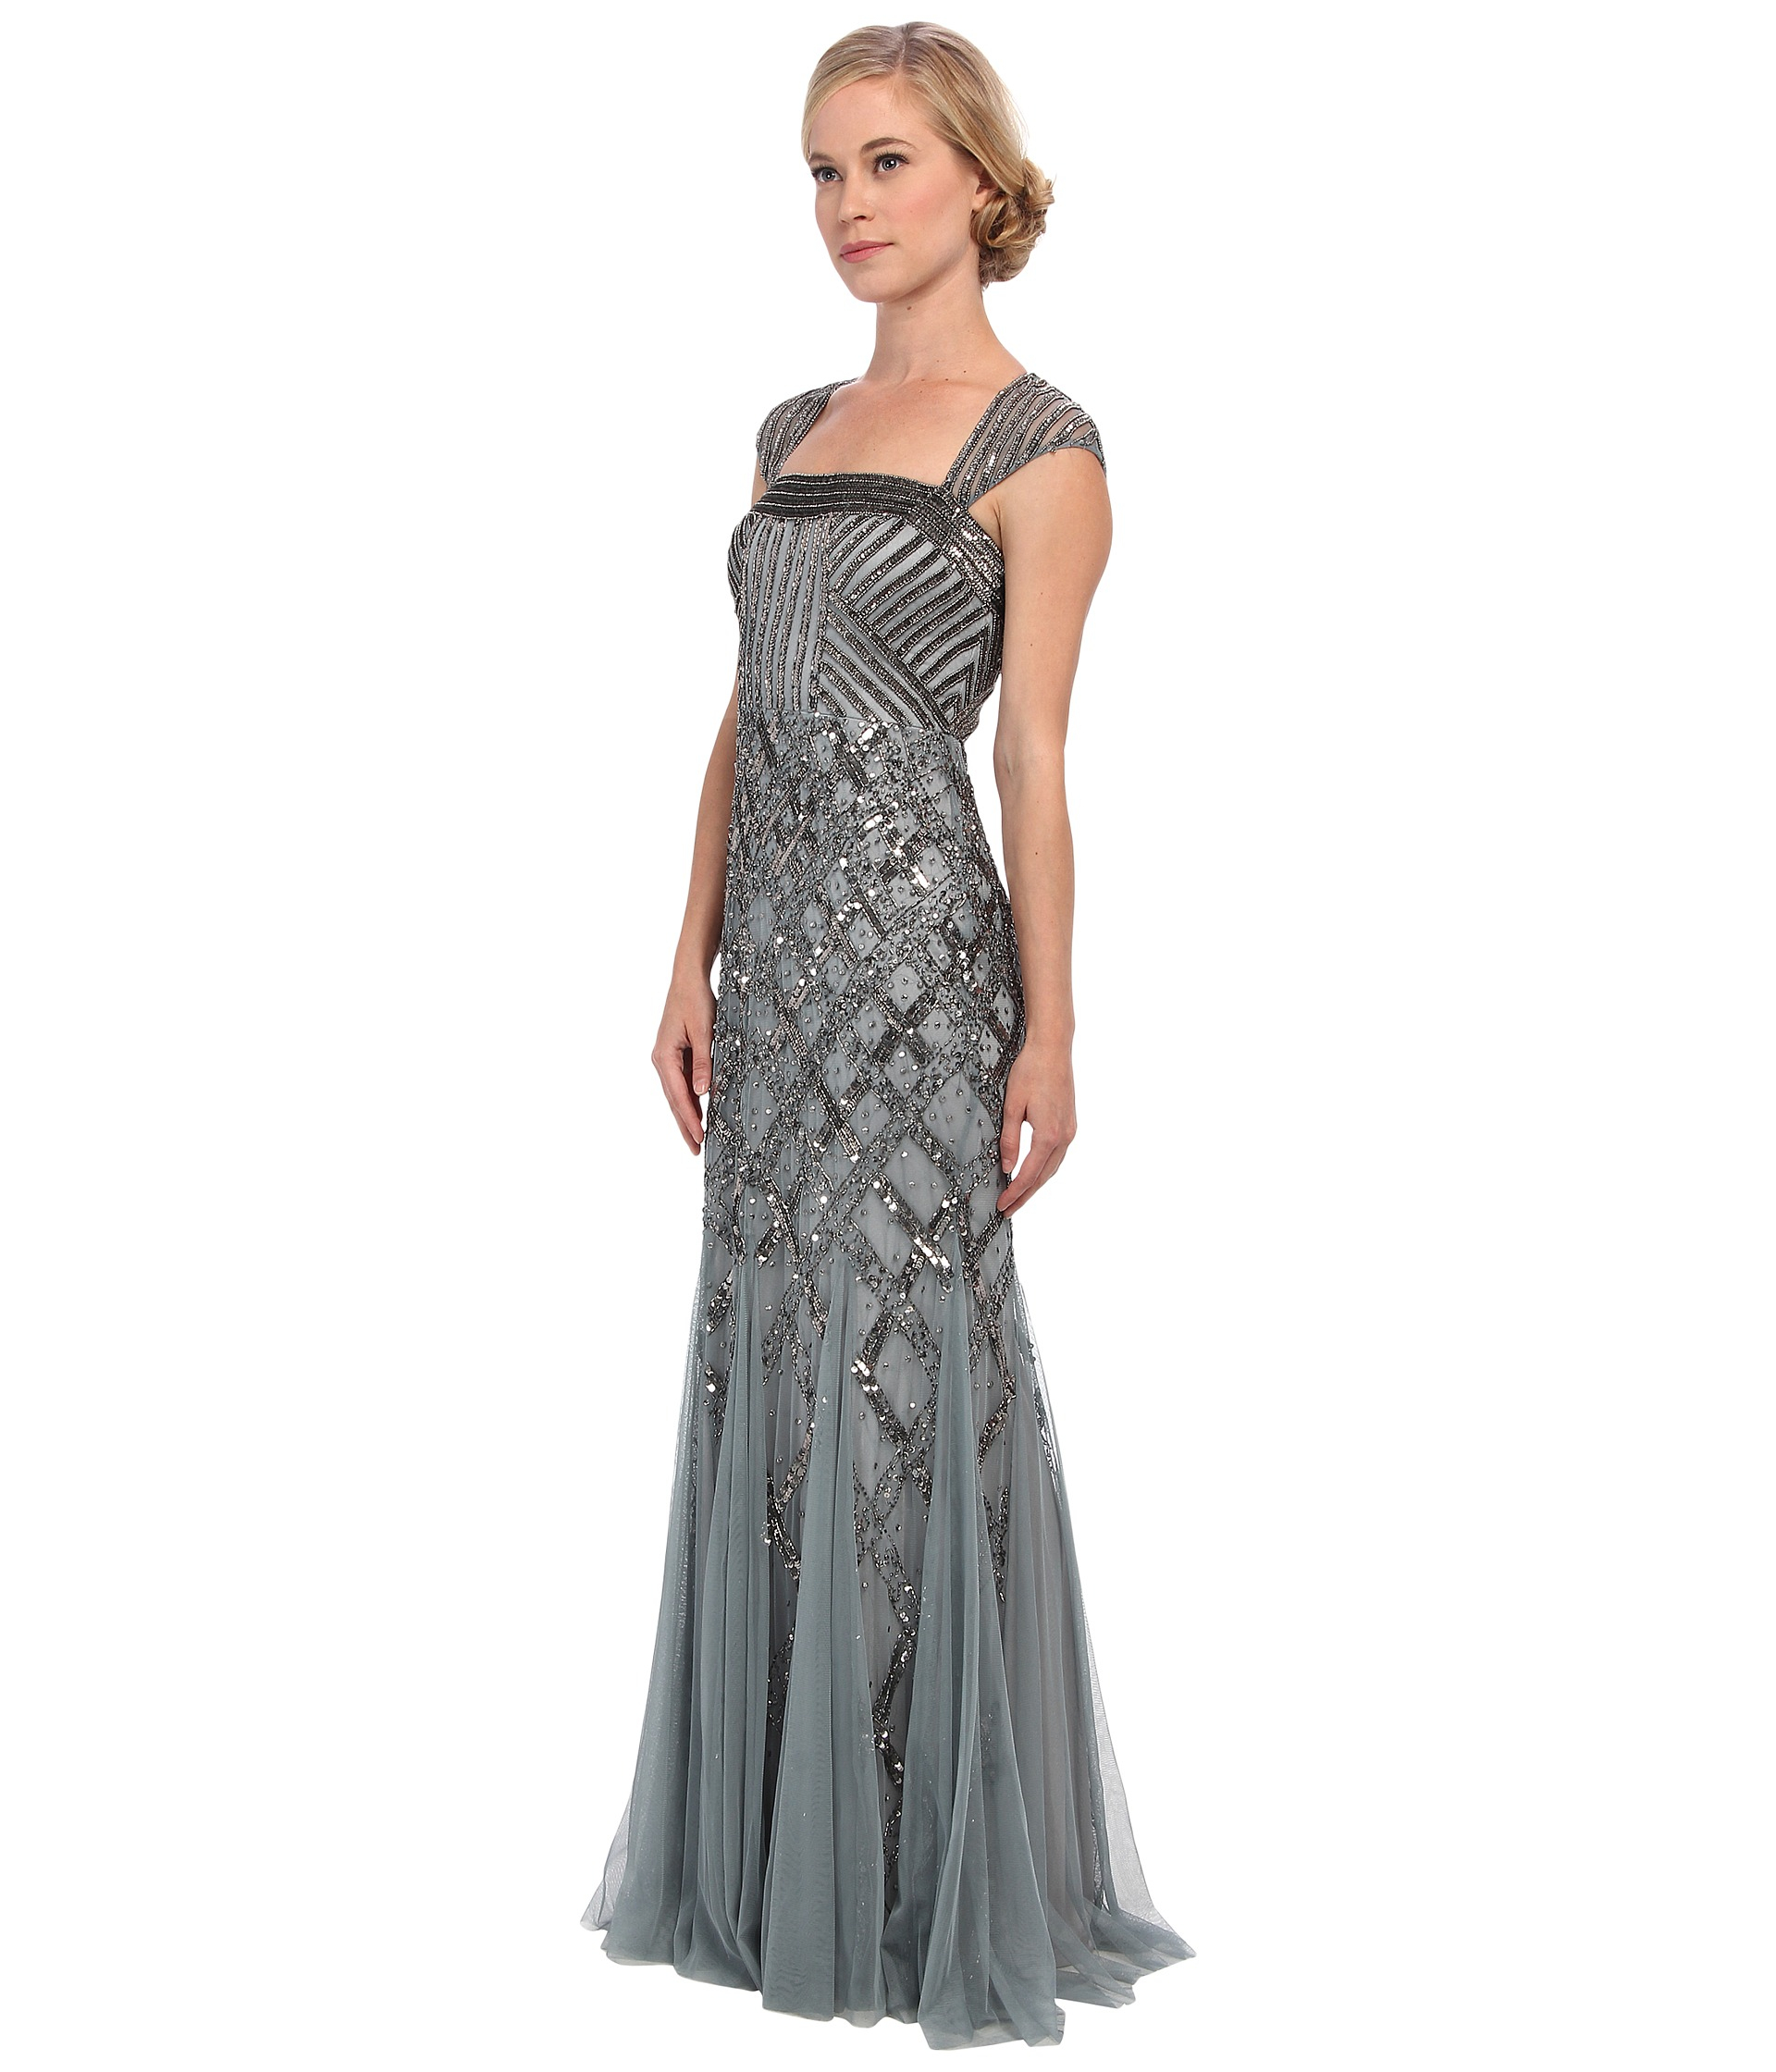 Adrianna papell gown short sleeve deco - Gallery